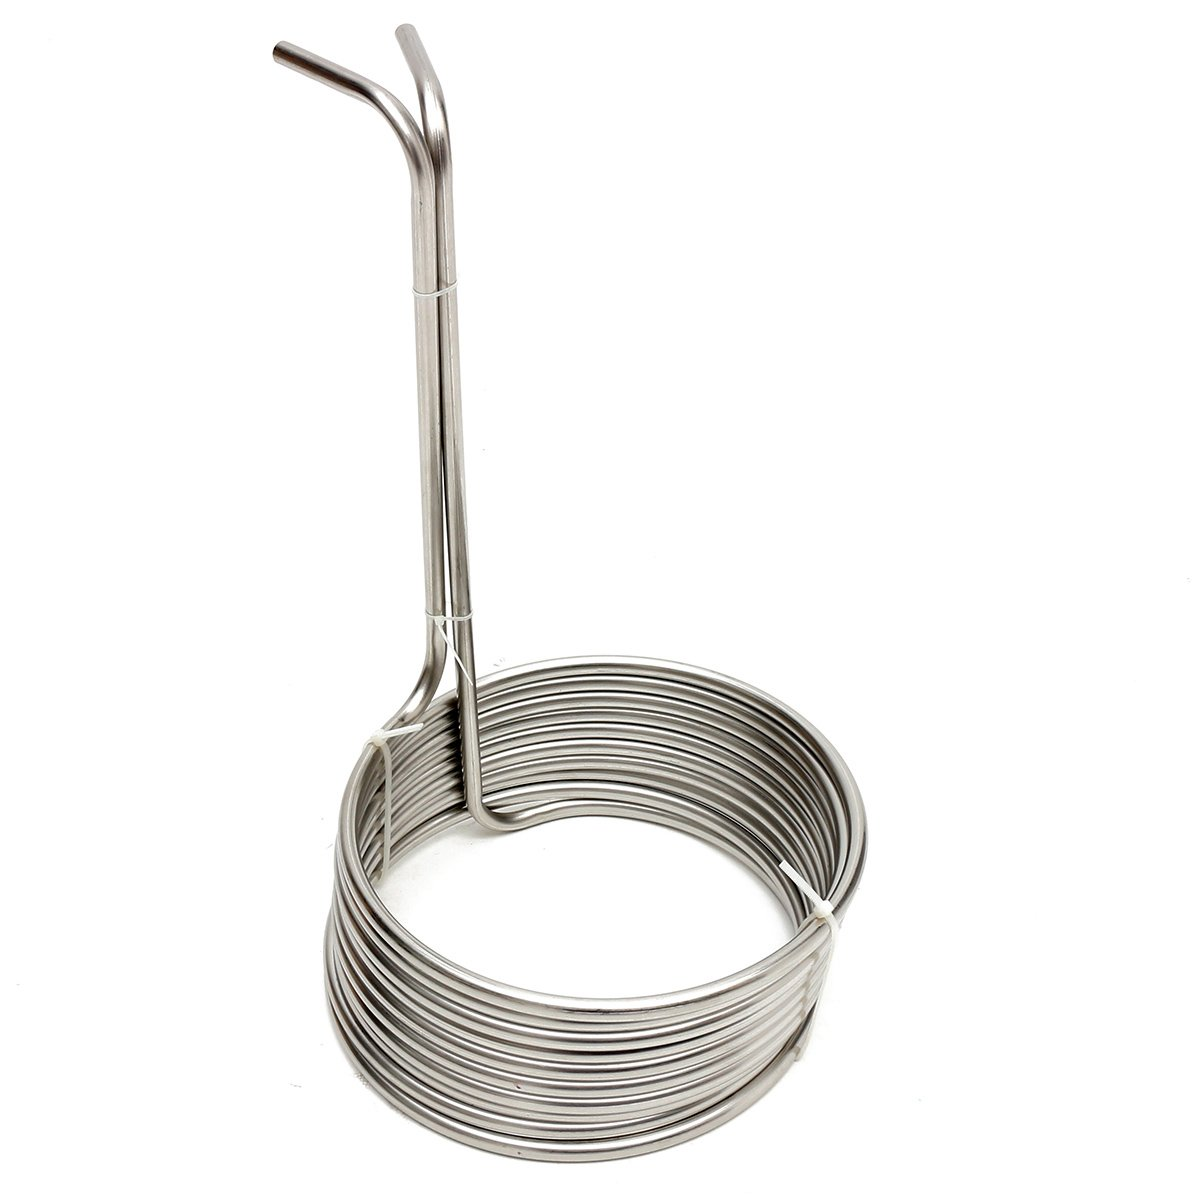 Cooling Coil Pipe, SENREAL Super Efficient Stainless Steel Cooling Coil Home Brewing Wort Chiller Pipe-#1 by SENREAL (Image #6)